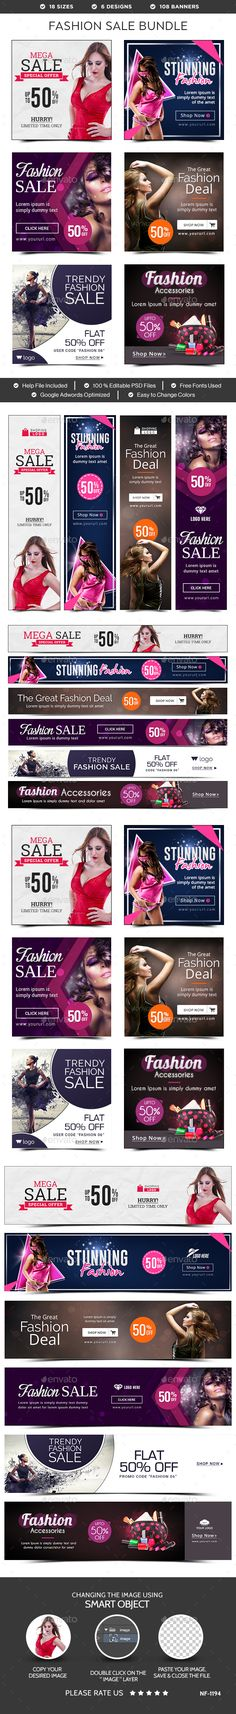 Fashion Sale Banners Templates PSD Bundle - 6 Sets. Download here: http://graphicriver.net/item/fashion-sale-banners-bundle-6-sets/15633748?ref=ksioks